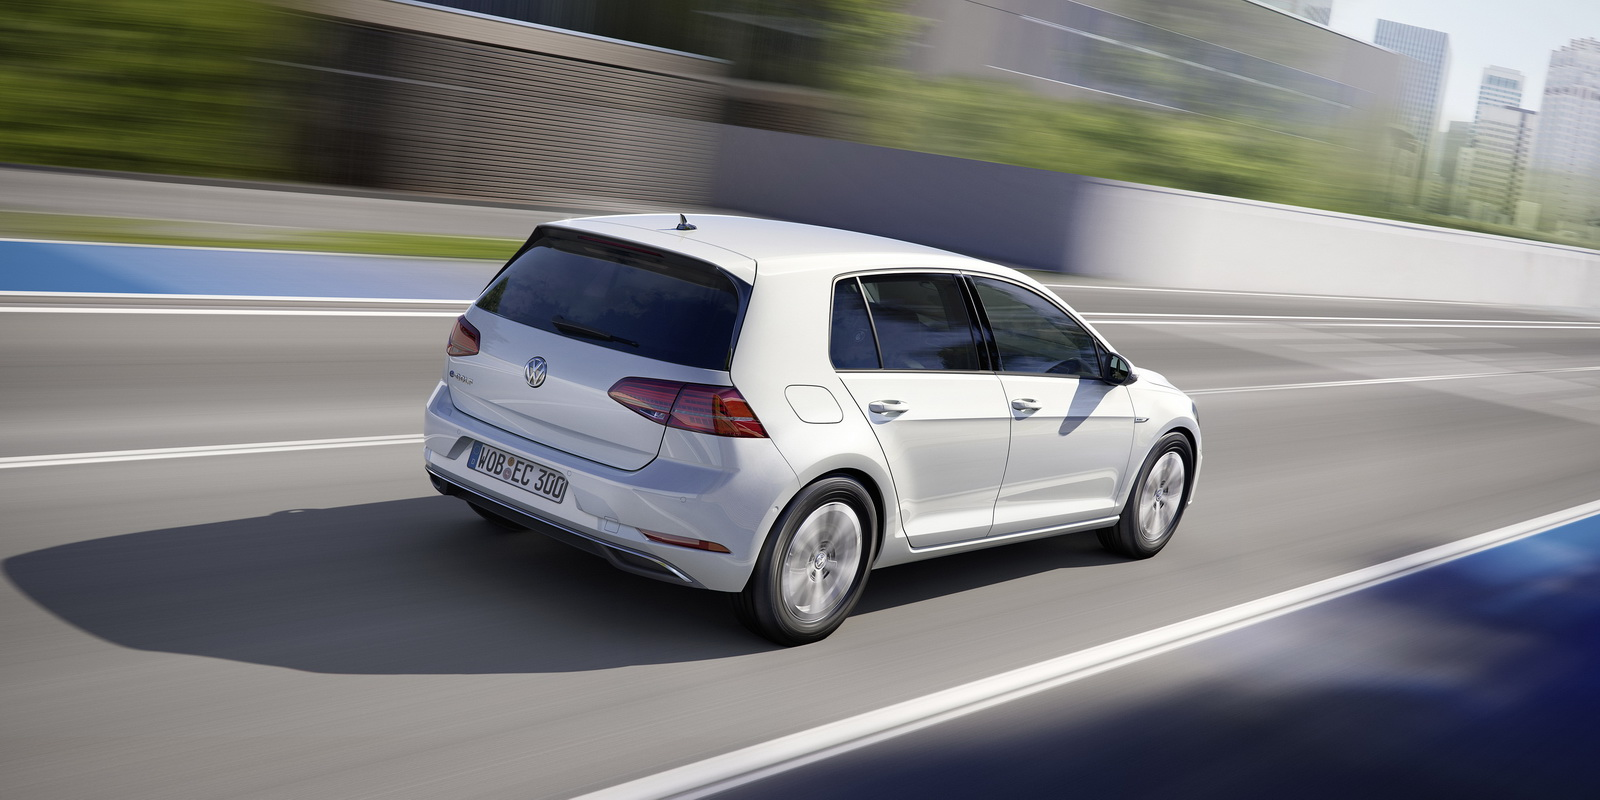 Electric Motor Manufacturer Volkswagen E Golf Labeled Diagram Of A Ship New Vw Becomes More Usable With Longer